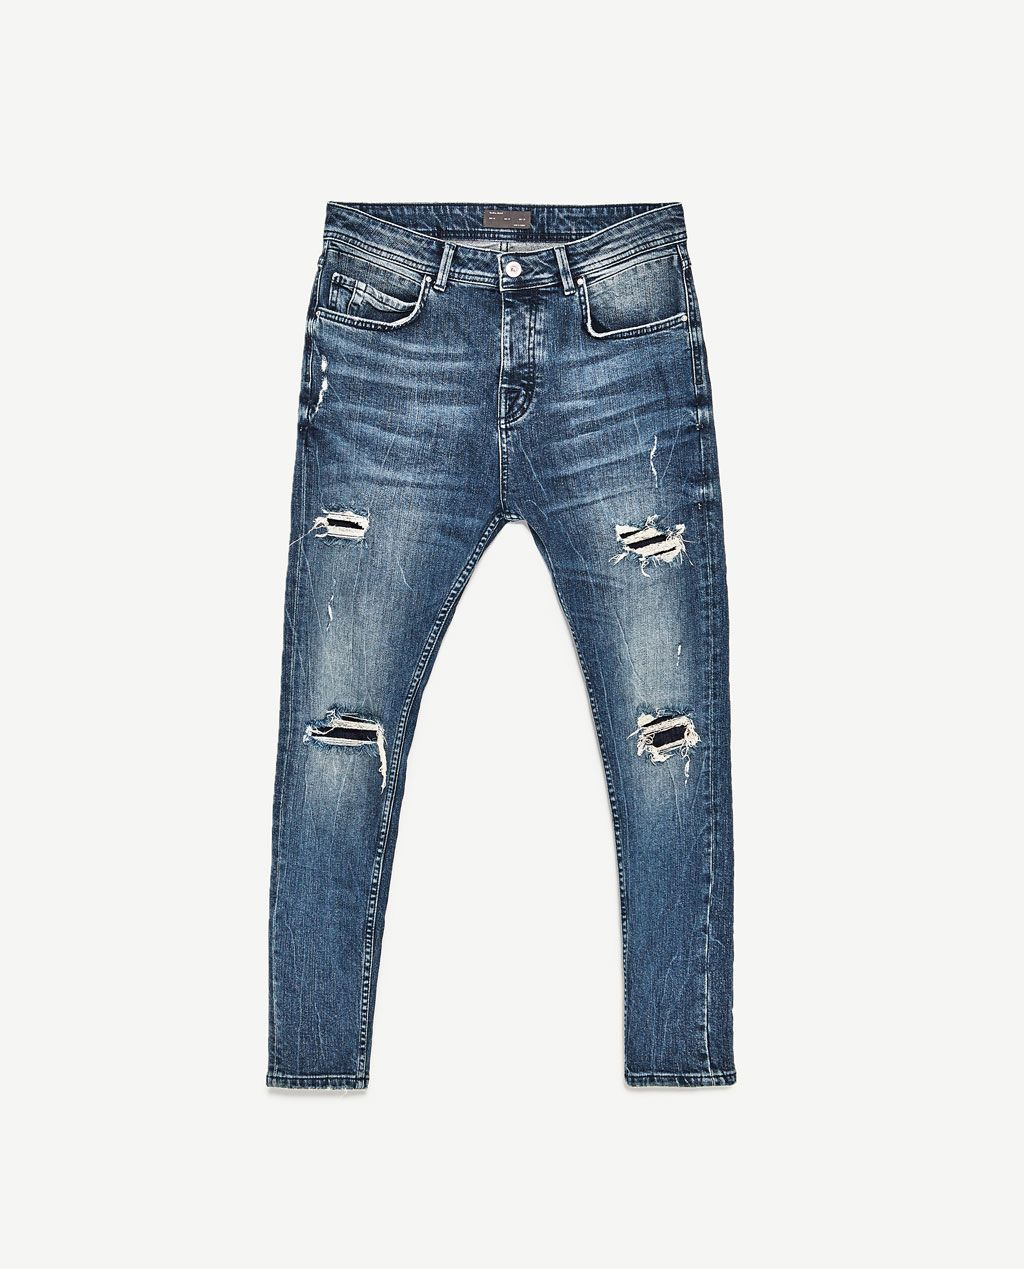 Jack /& Jones-Erik Royal-RDD-Anti Fit-Men//Uomo Jeans-NUOVO